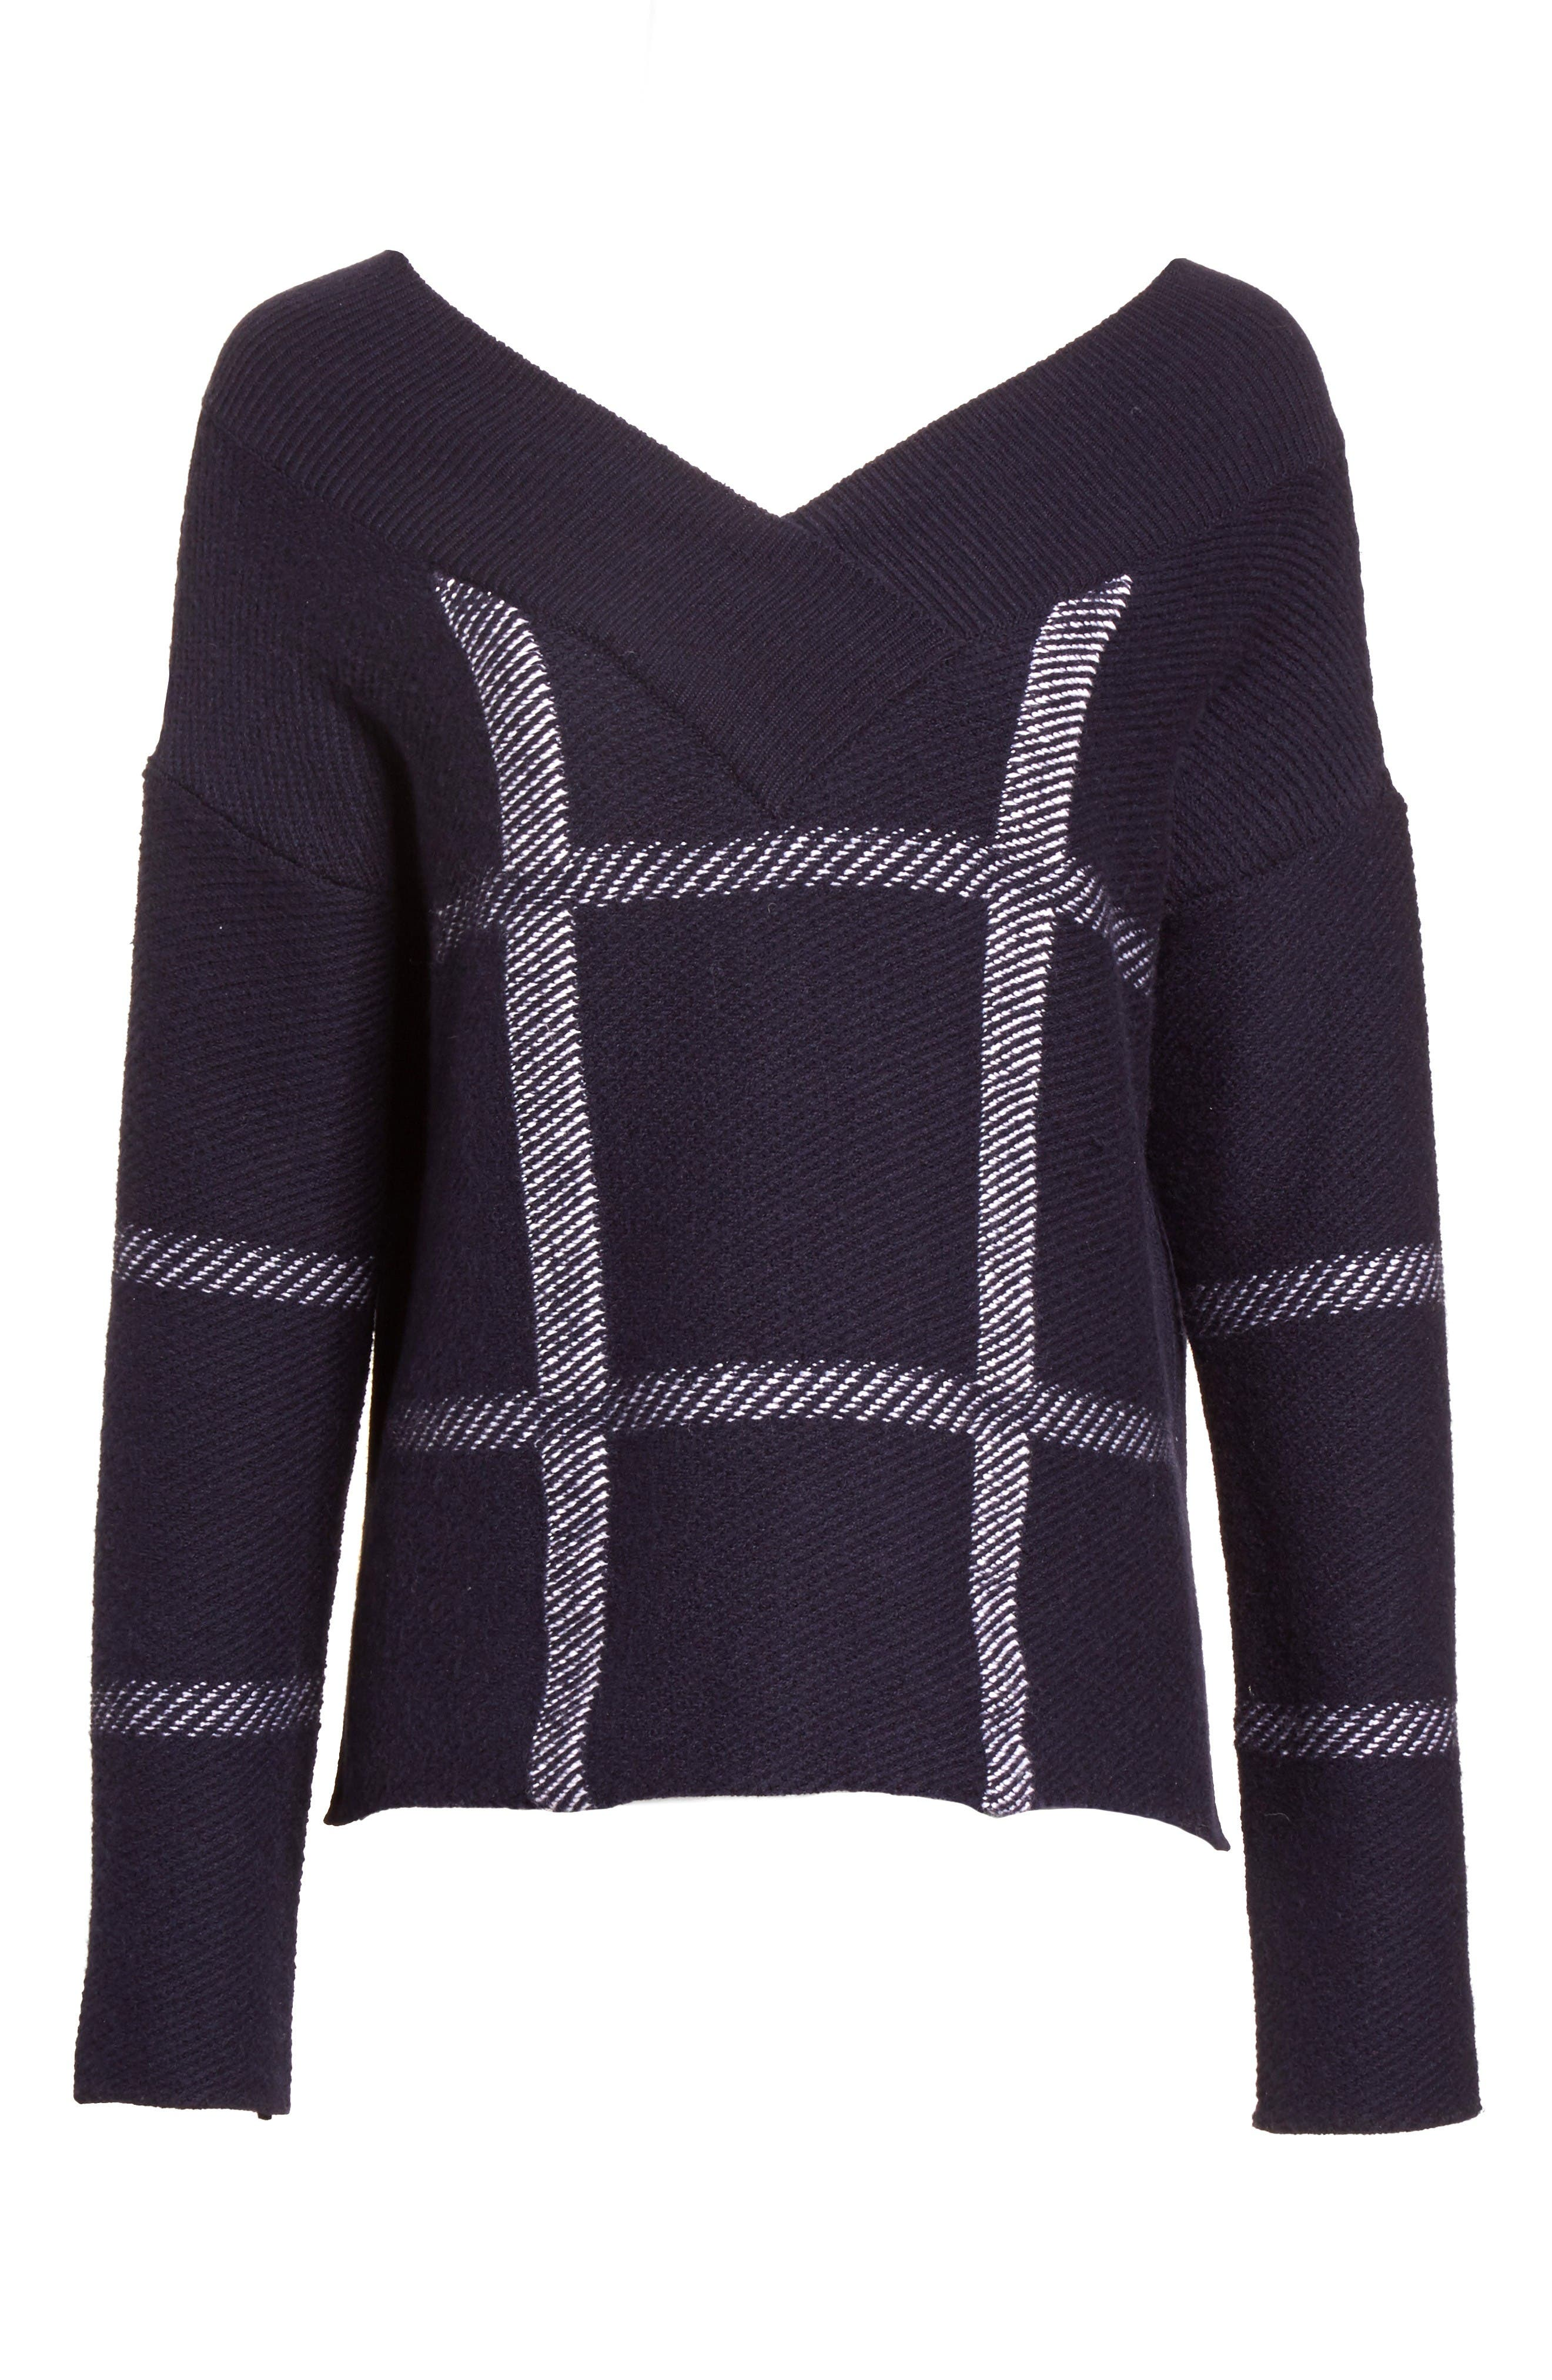 Windowpane Wool & Cashmere Sweater,                             Alternate thumbnail 4, color,                             Navy Multi